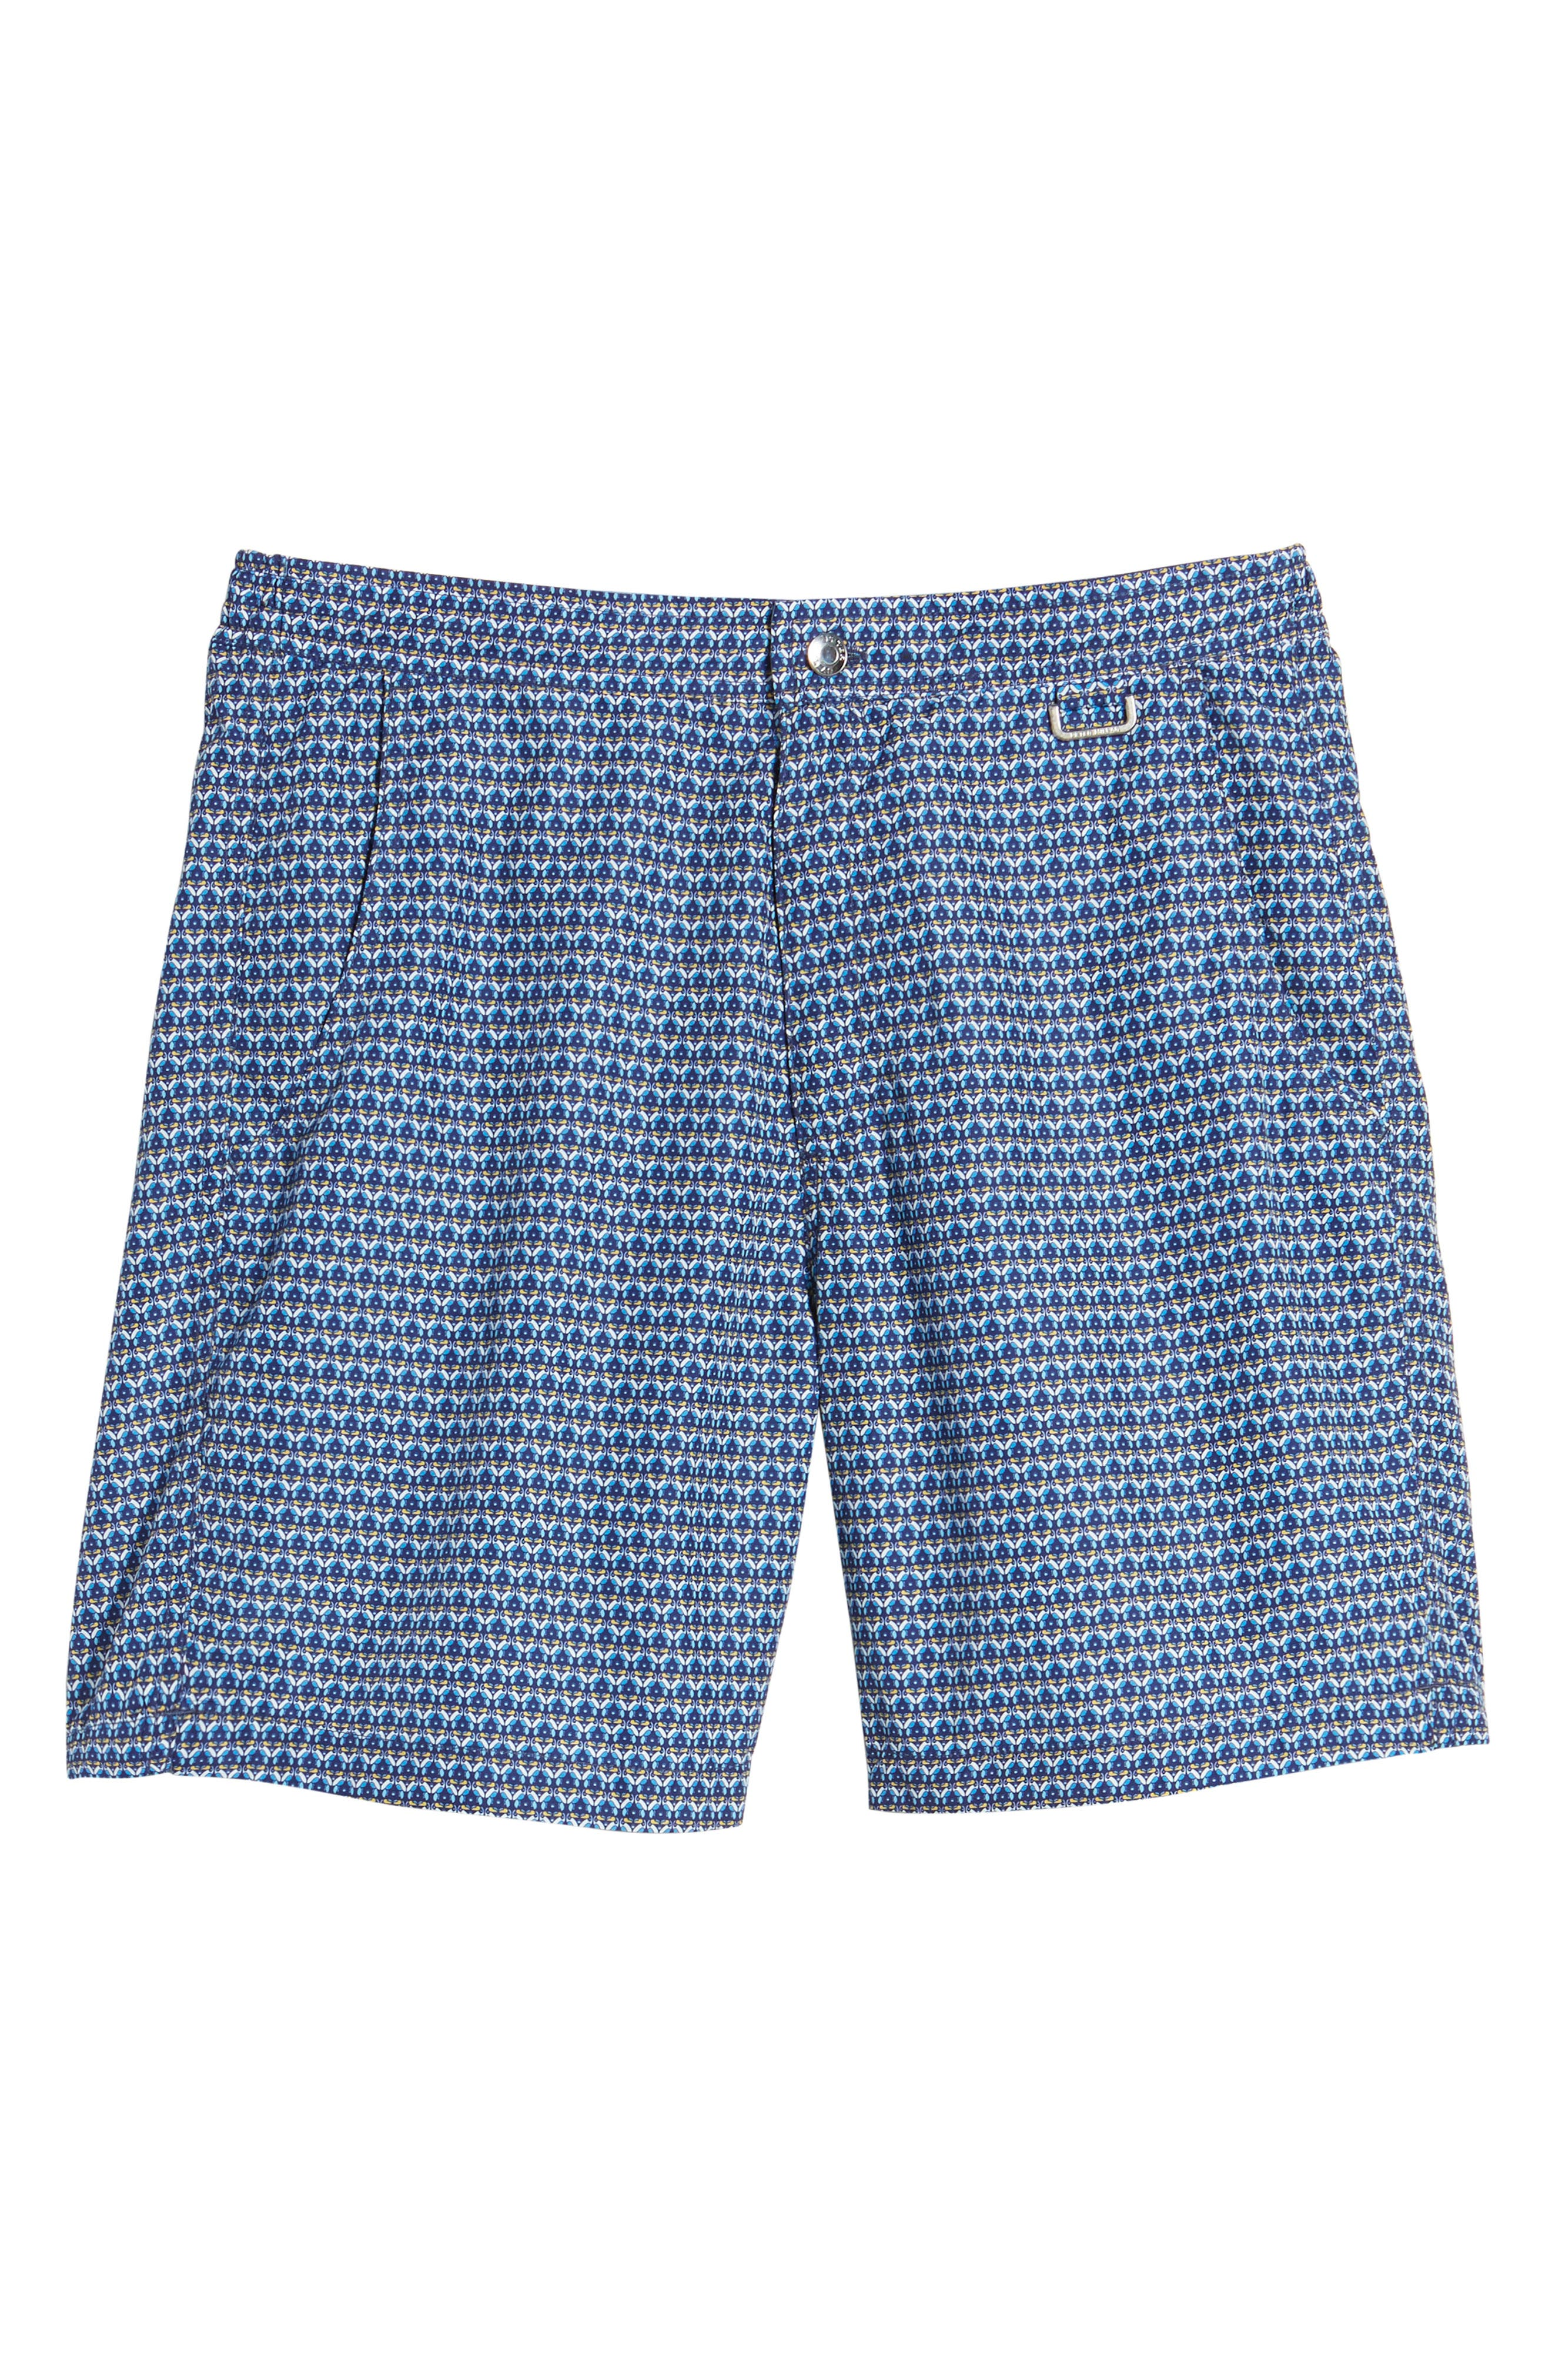 Peter Millar Two Can Too Swim Trunks,                             Alternate thumbnail 6, color,                             440